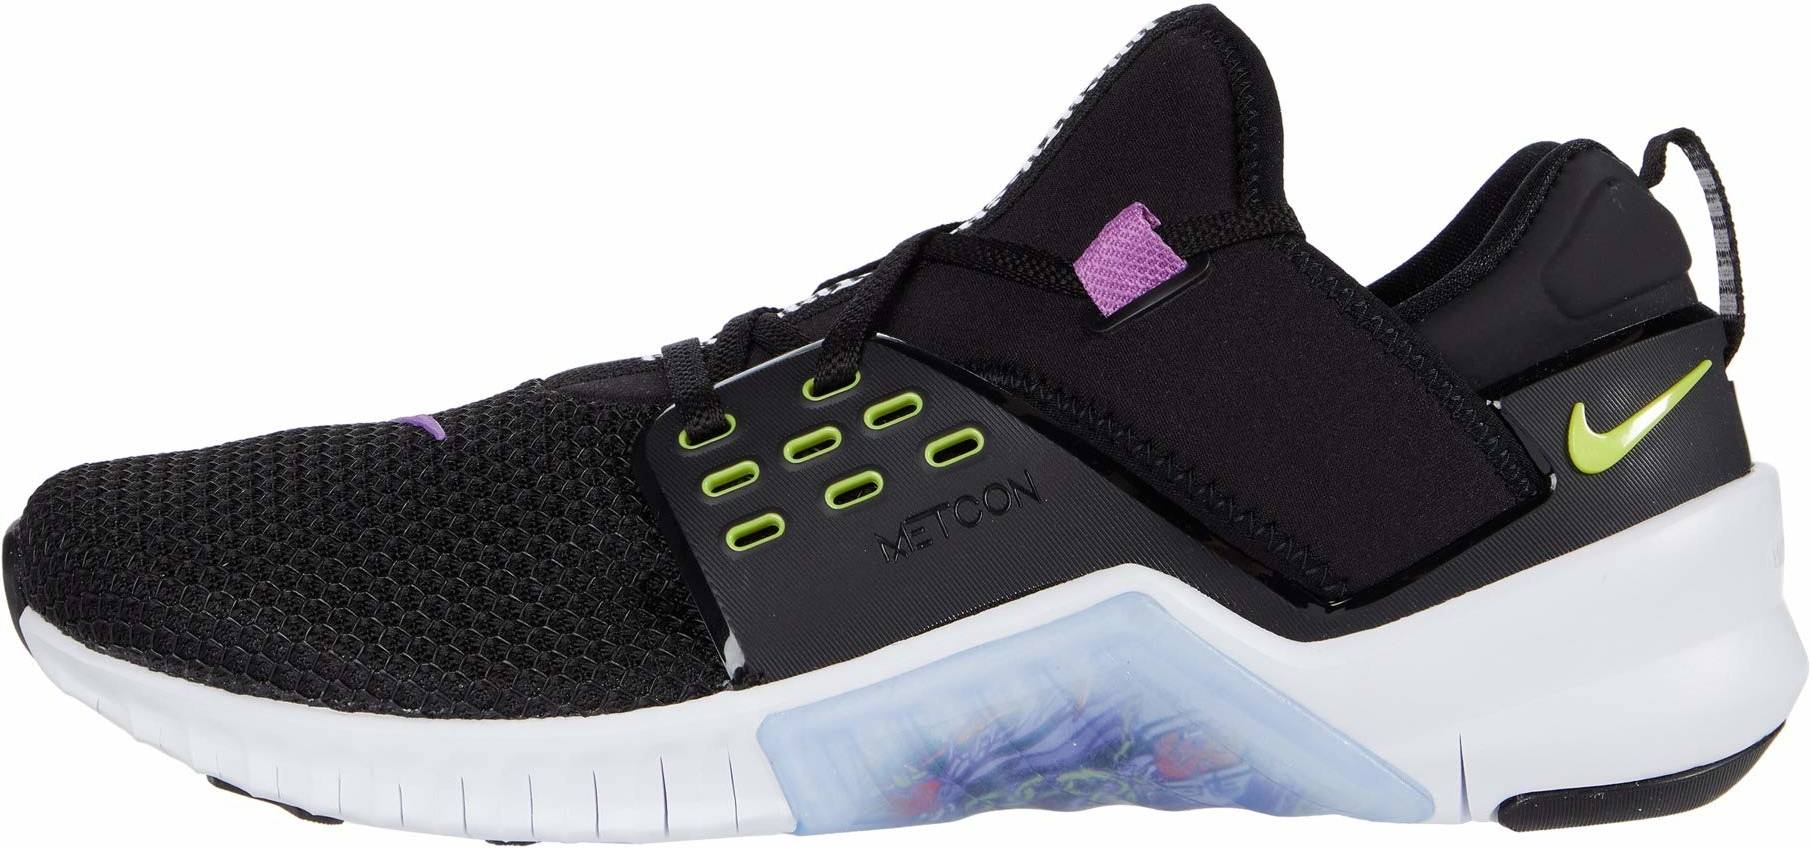 Nike Free X Metcon 2 Deals 60 Facts Reviews 2021 Runrepeat